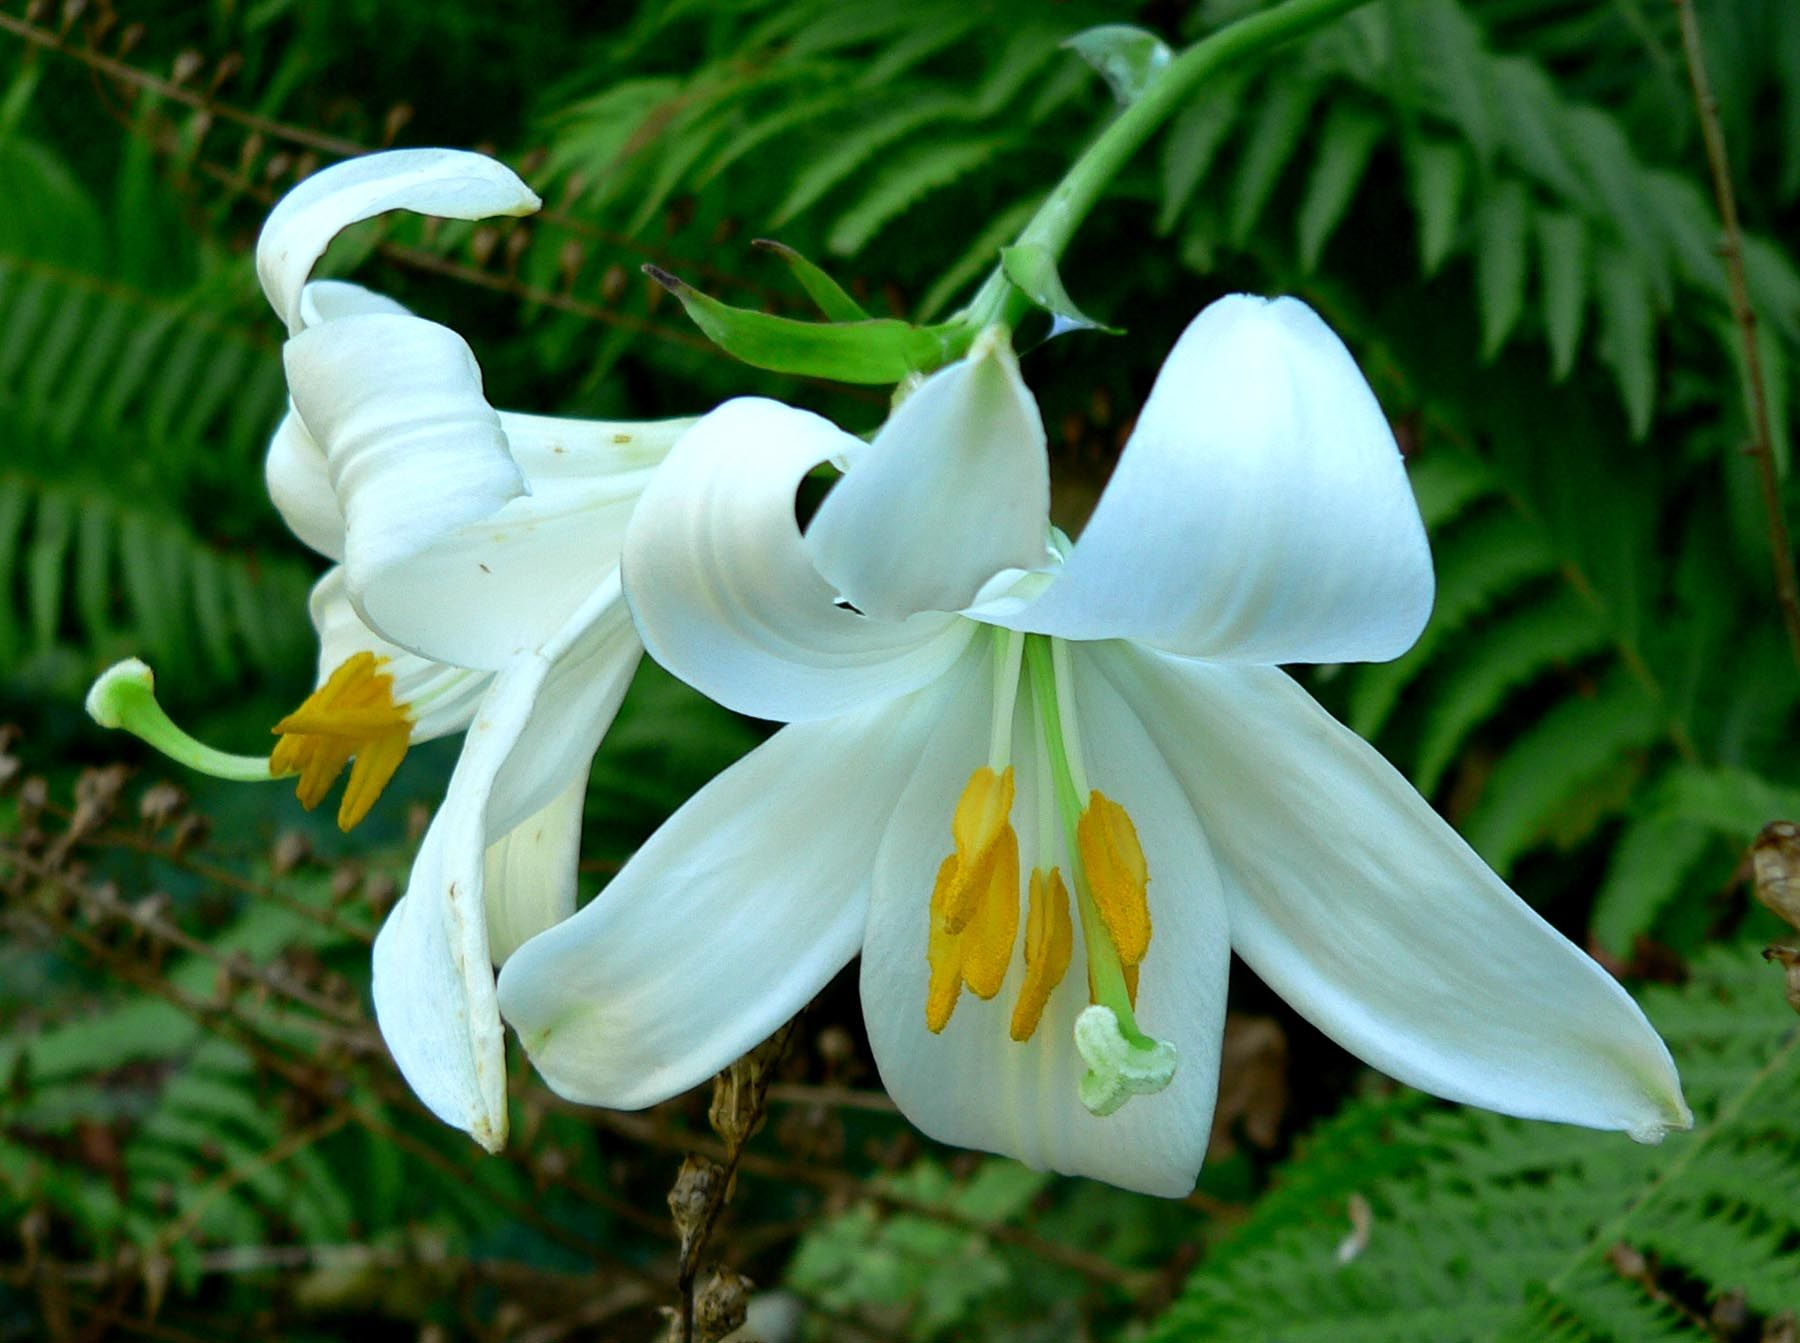 Lilium candidum madonna lily section liriotypus liliaceae perennial madonna lily canadian gardening lilies easter or madonna lilies and lilies of the valley white color and sweet fragrance symbolize marys dhlflorist Choice Image